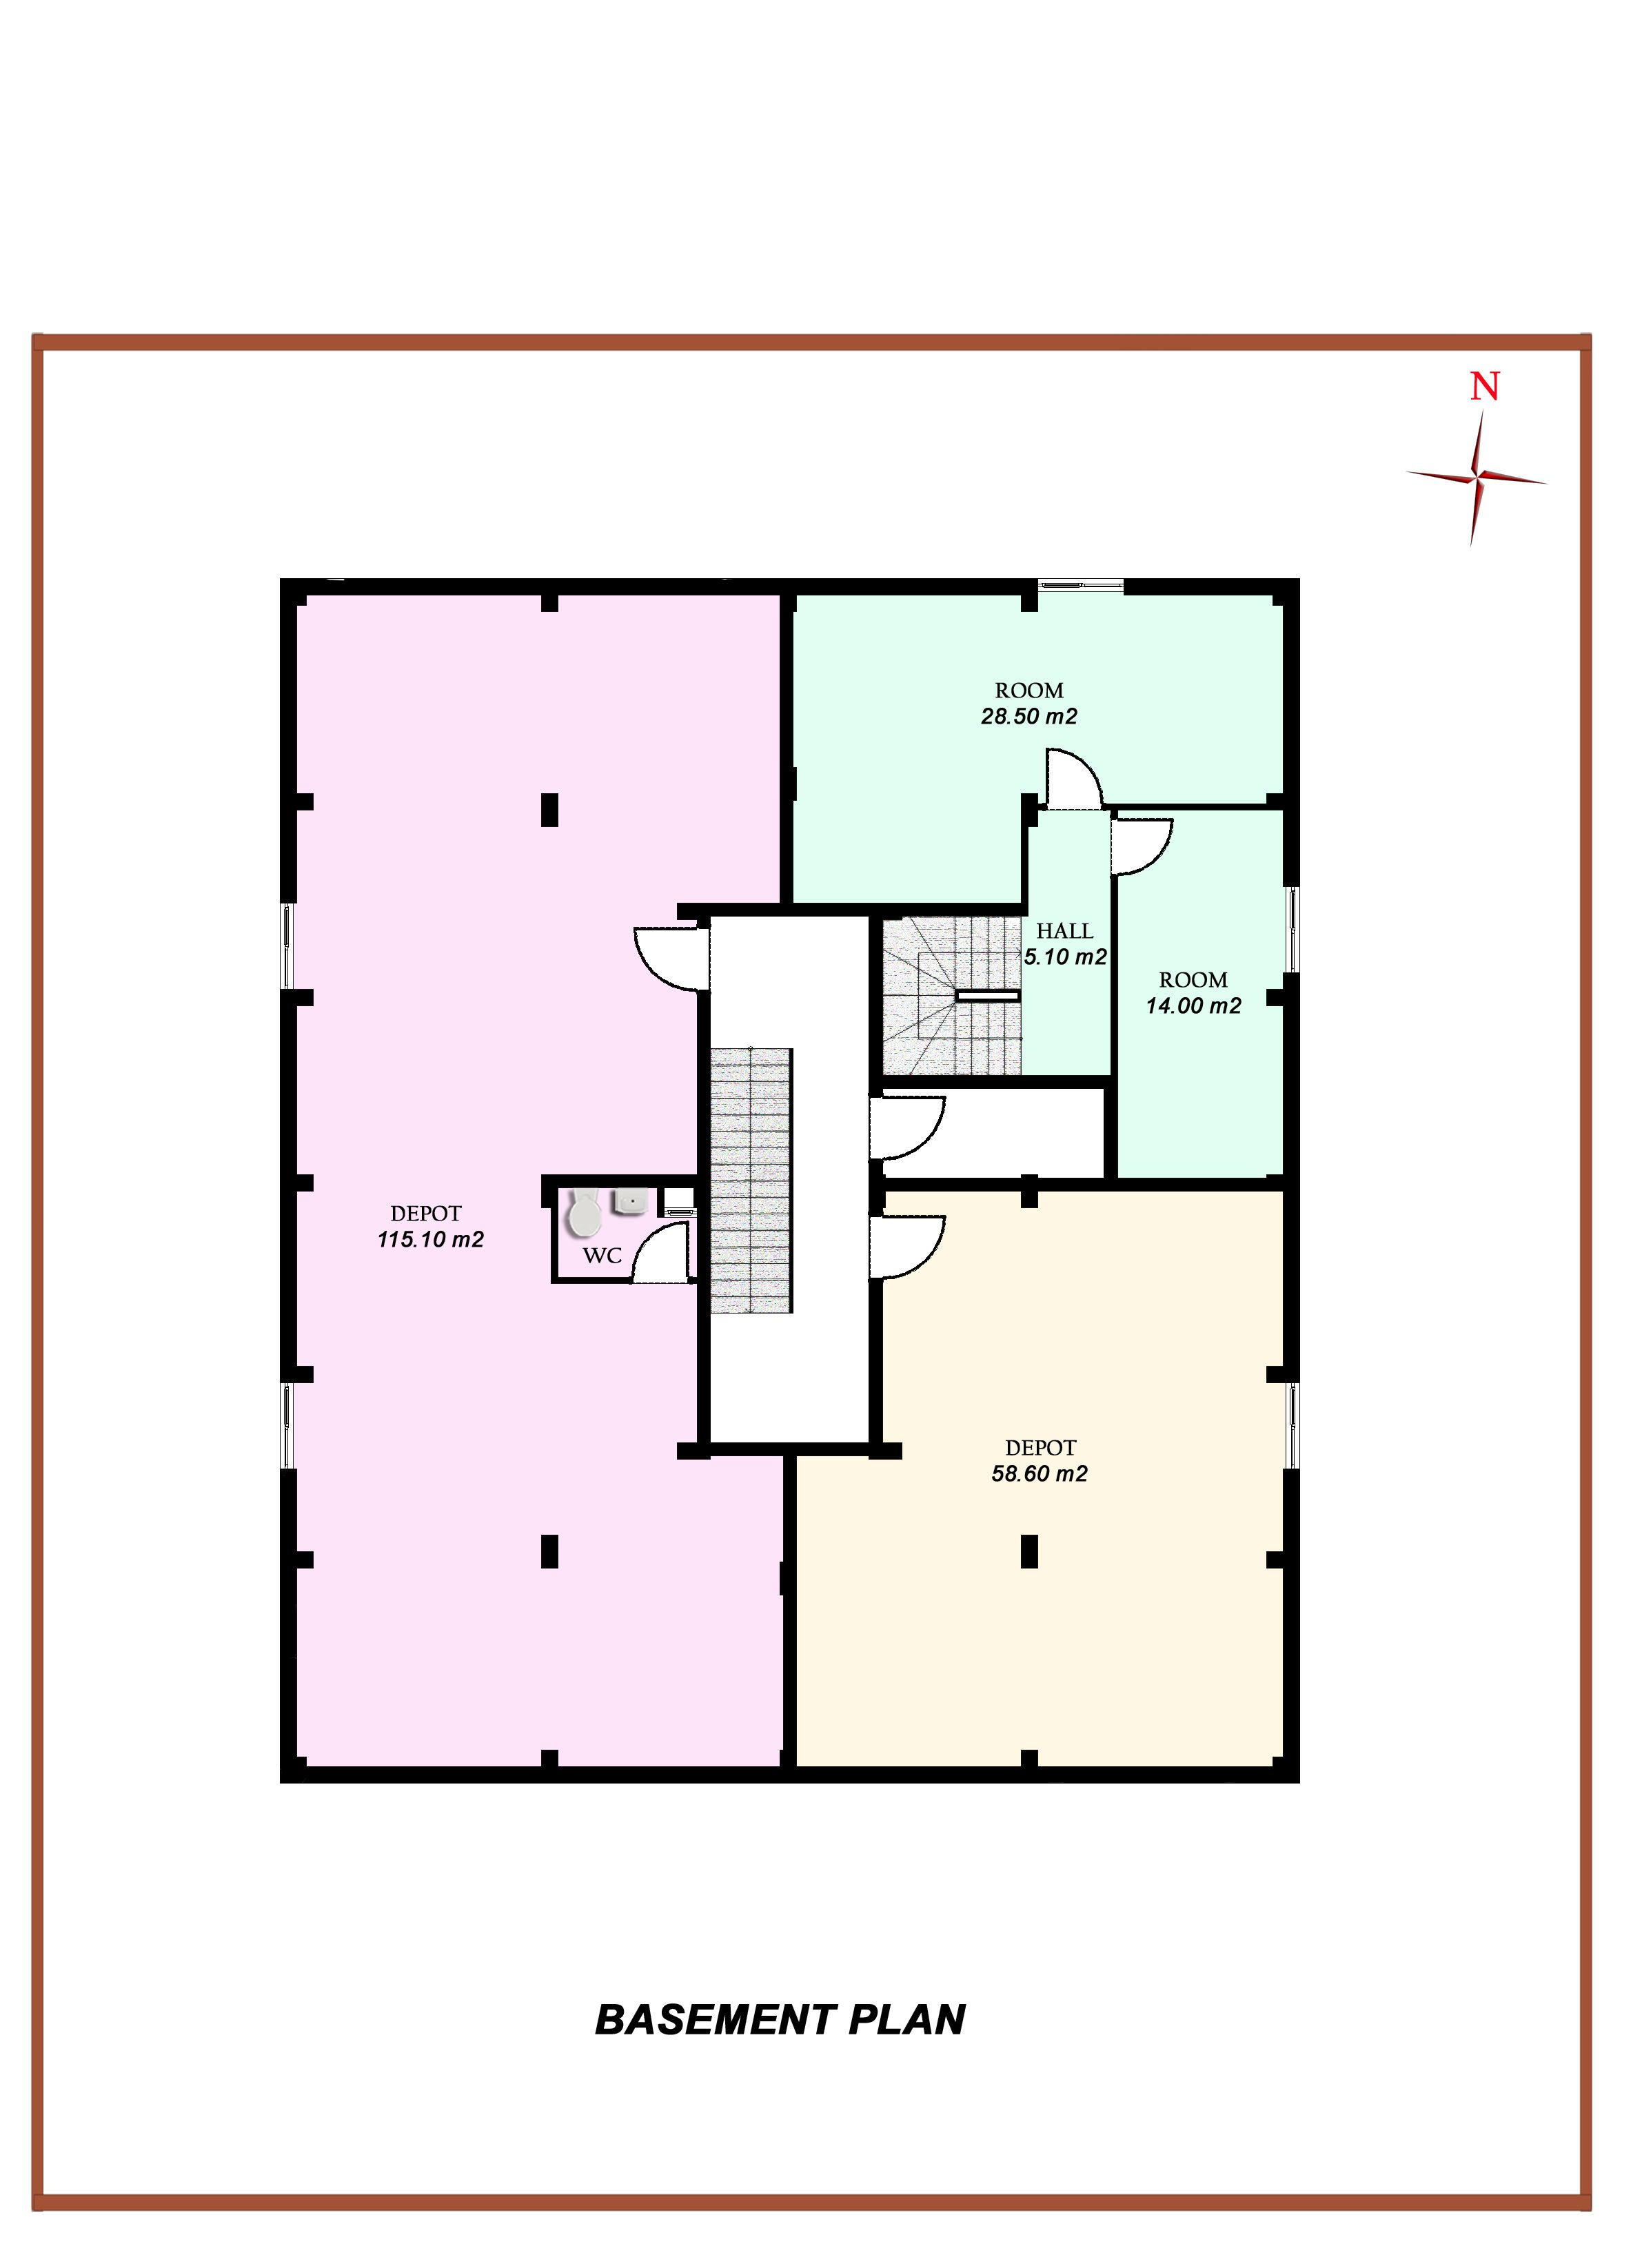 Attractive Small Basement Layout Ideas Basement Apartment